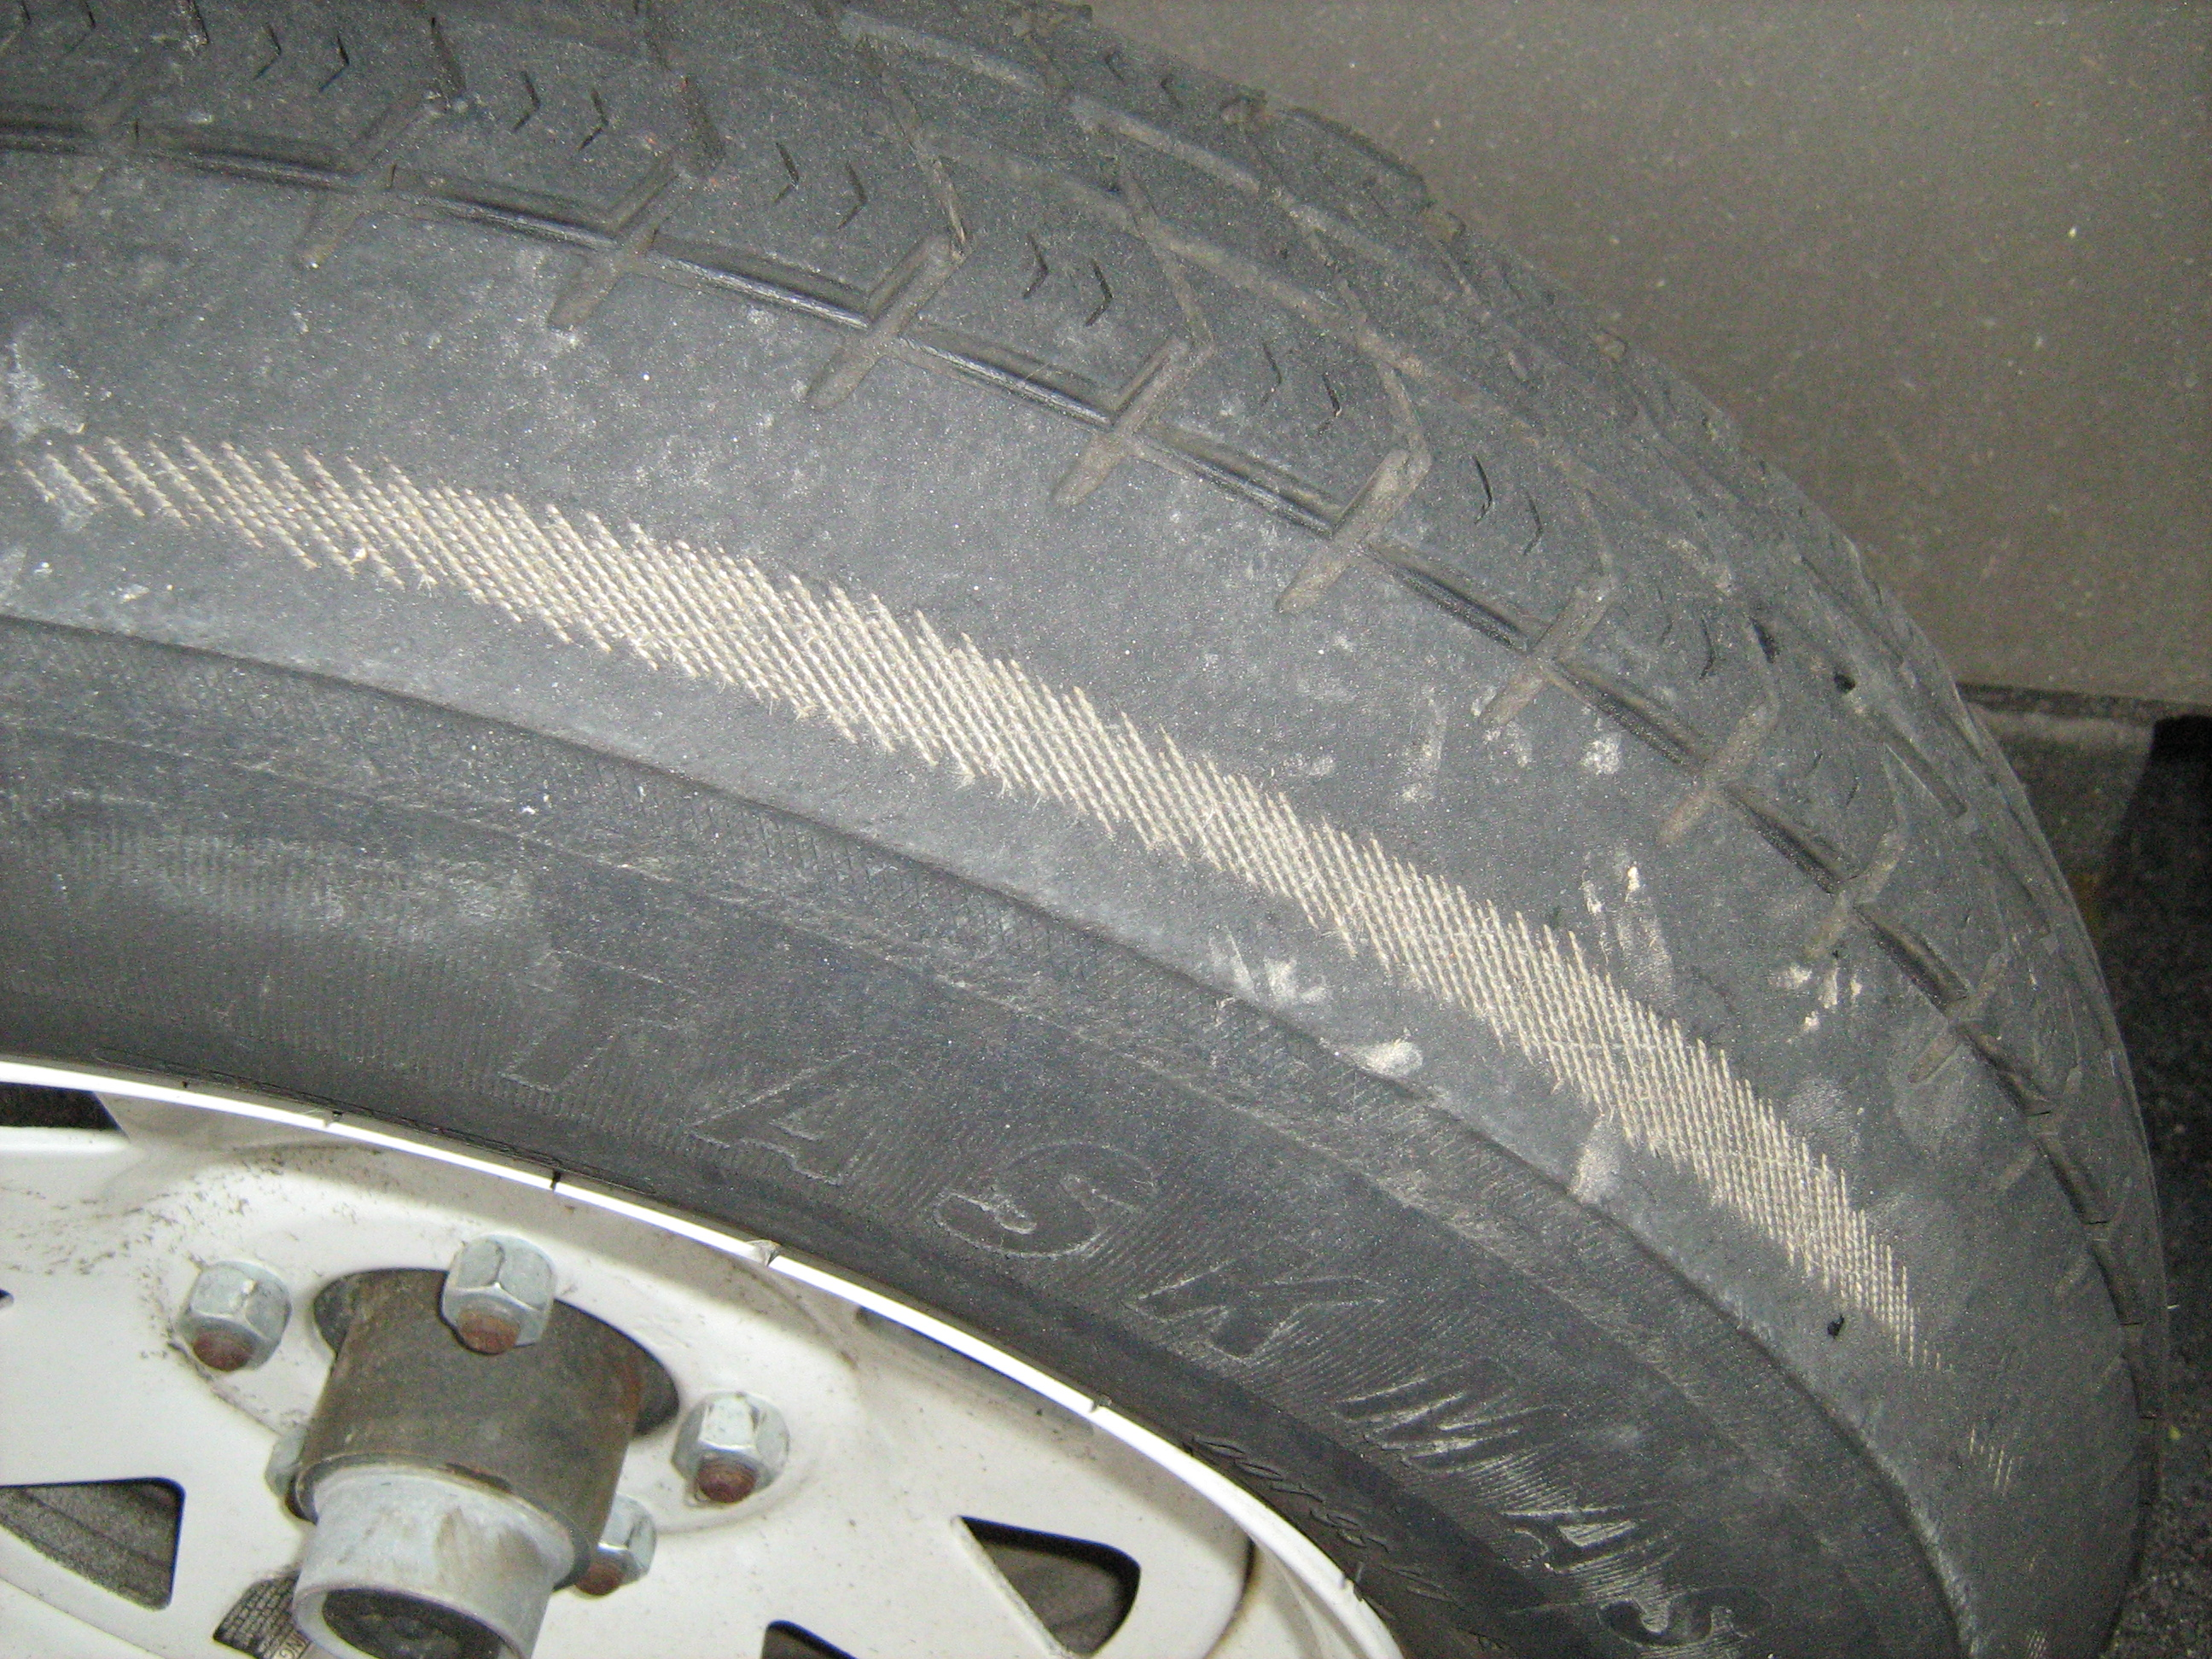 File:Tire Severe Under Inflation Wear.jpg - Wikimedia Commons